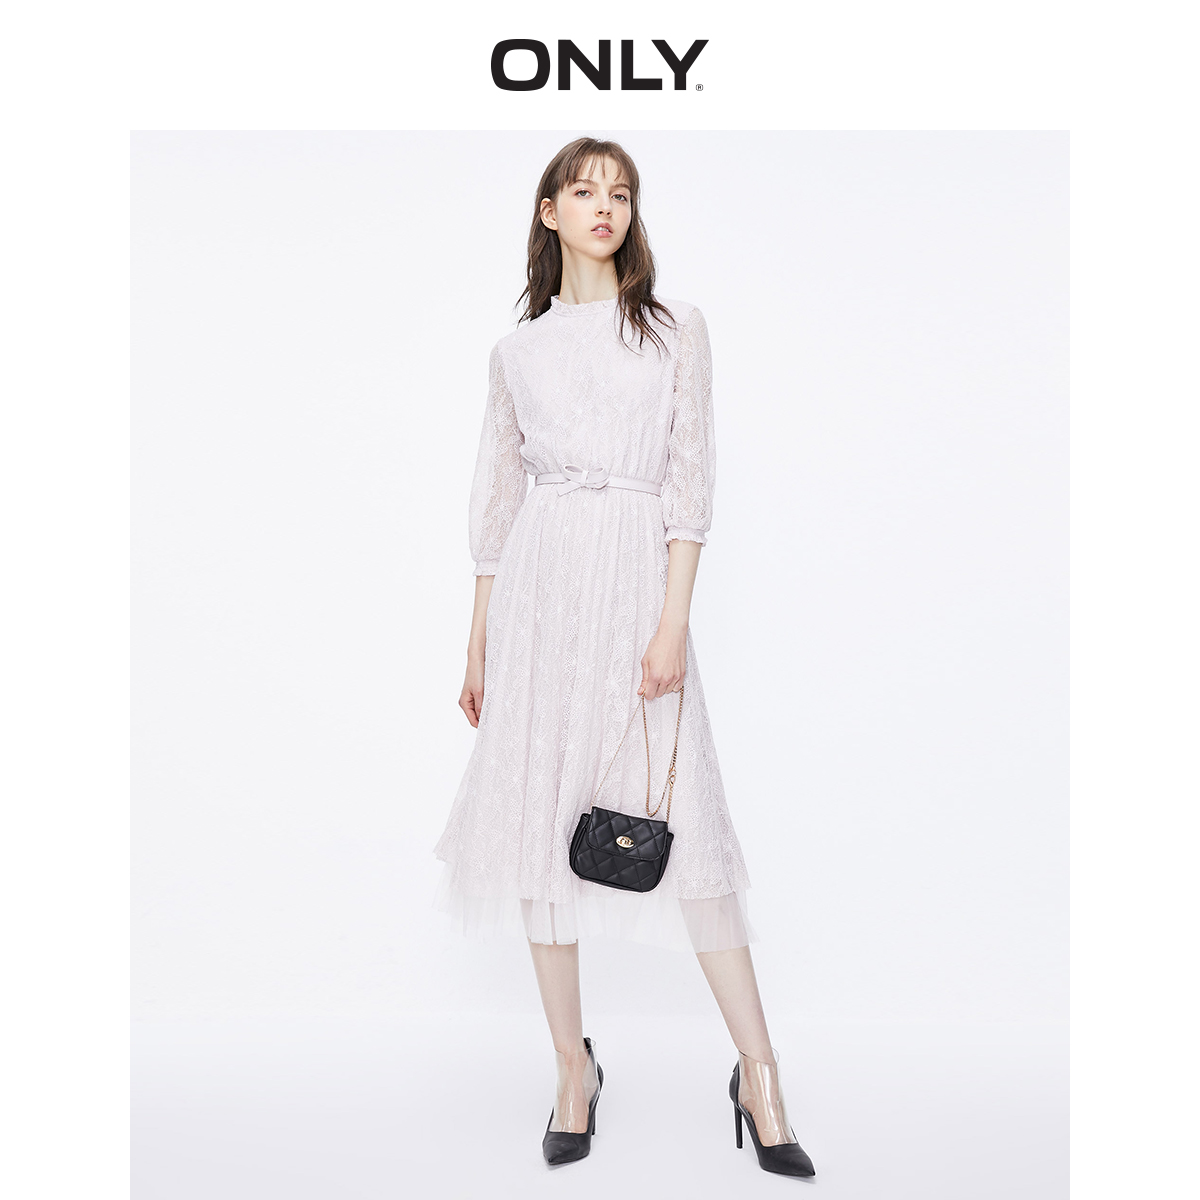 Only2019 winter new fashion lace mesh waist closing fairy sweet dress female 119307528